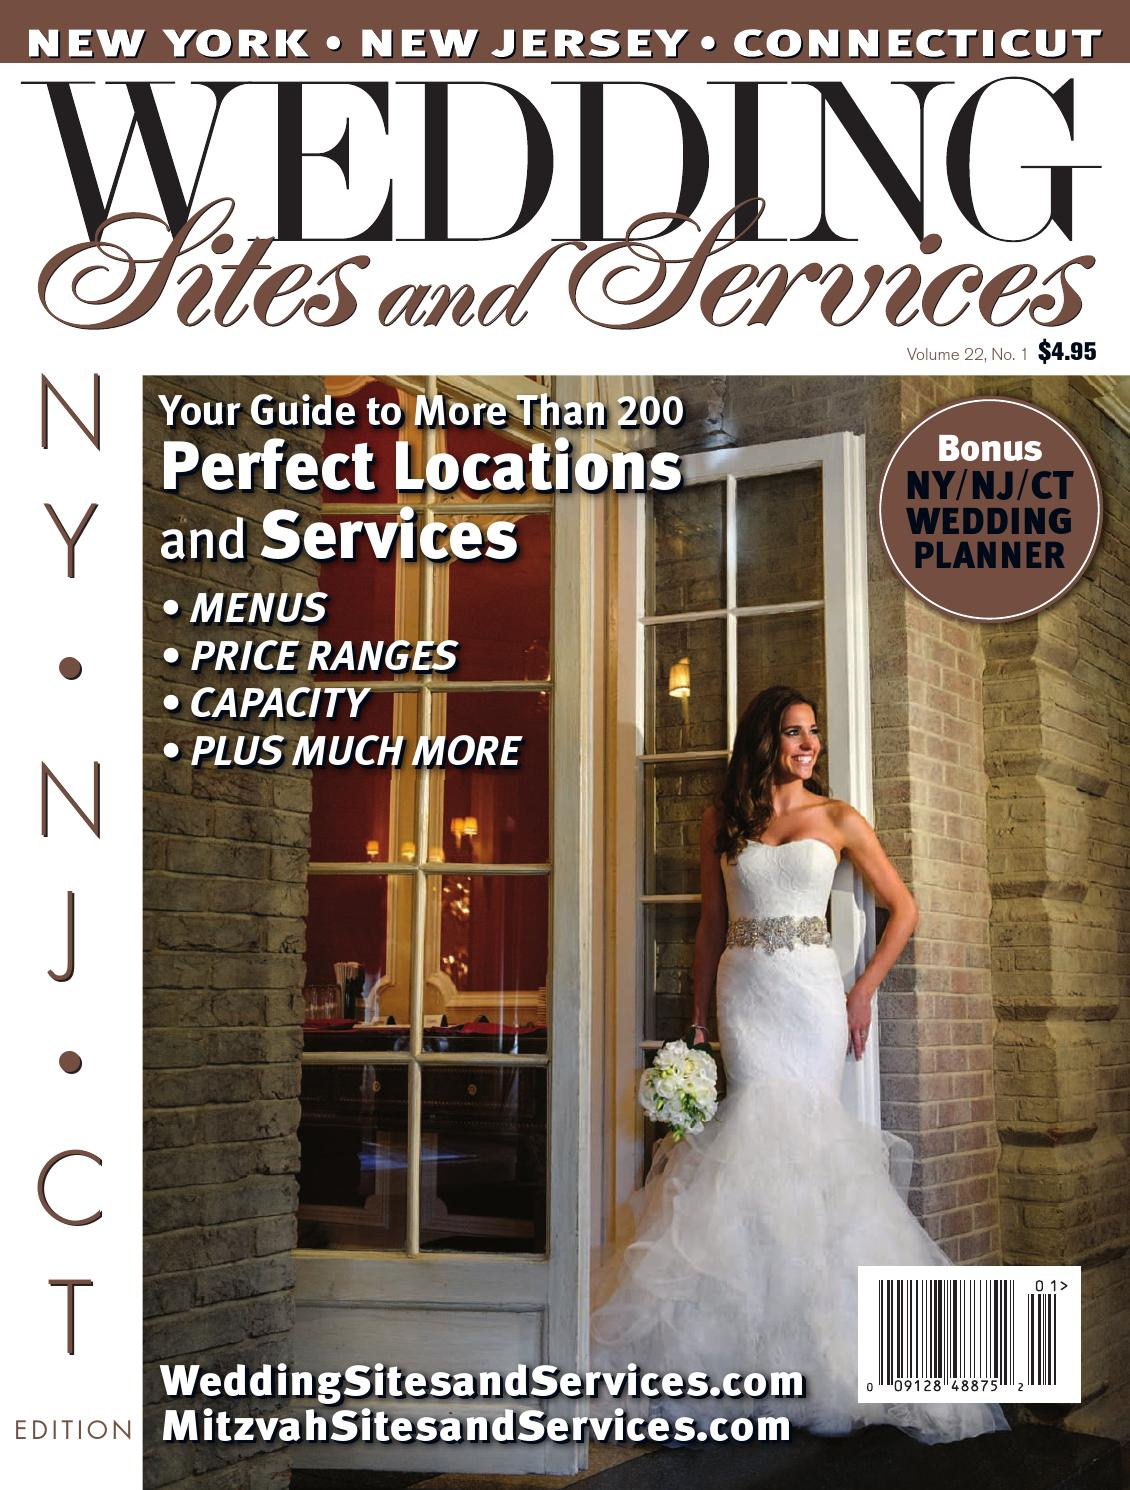 Wedding Sites And Services Ny Nj Ct January 2015 Edition By Wedding Sites And Services Issuu